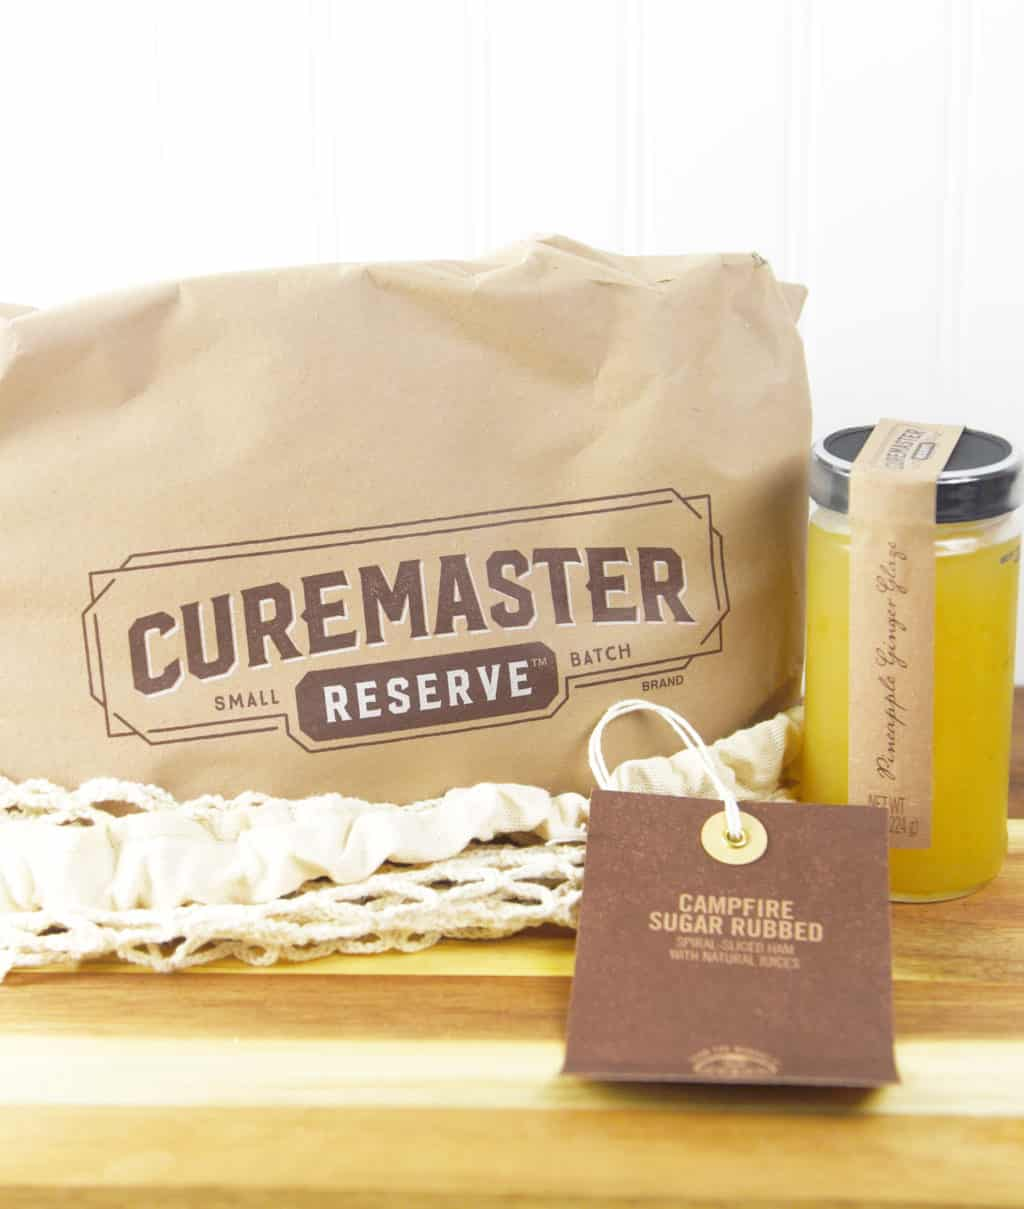 Campfire Sugar Roasted Curemaster Reserve Ham